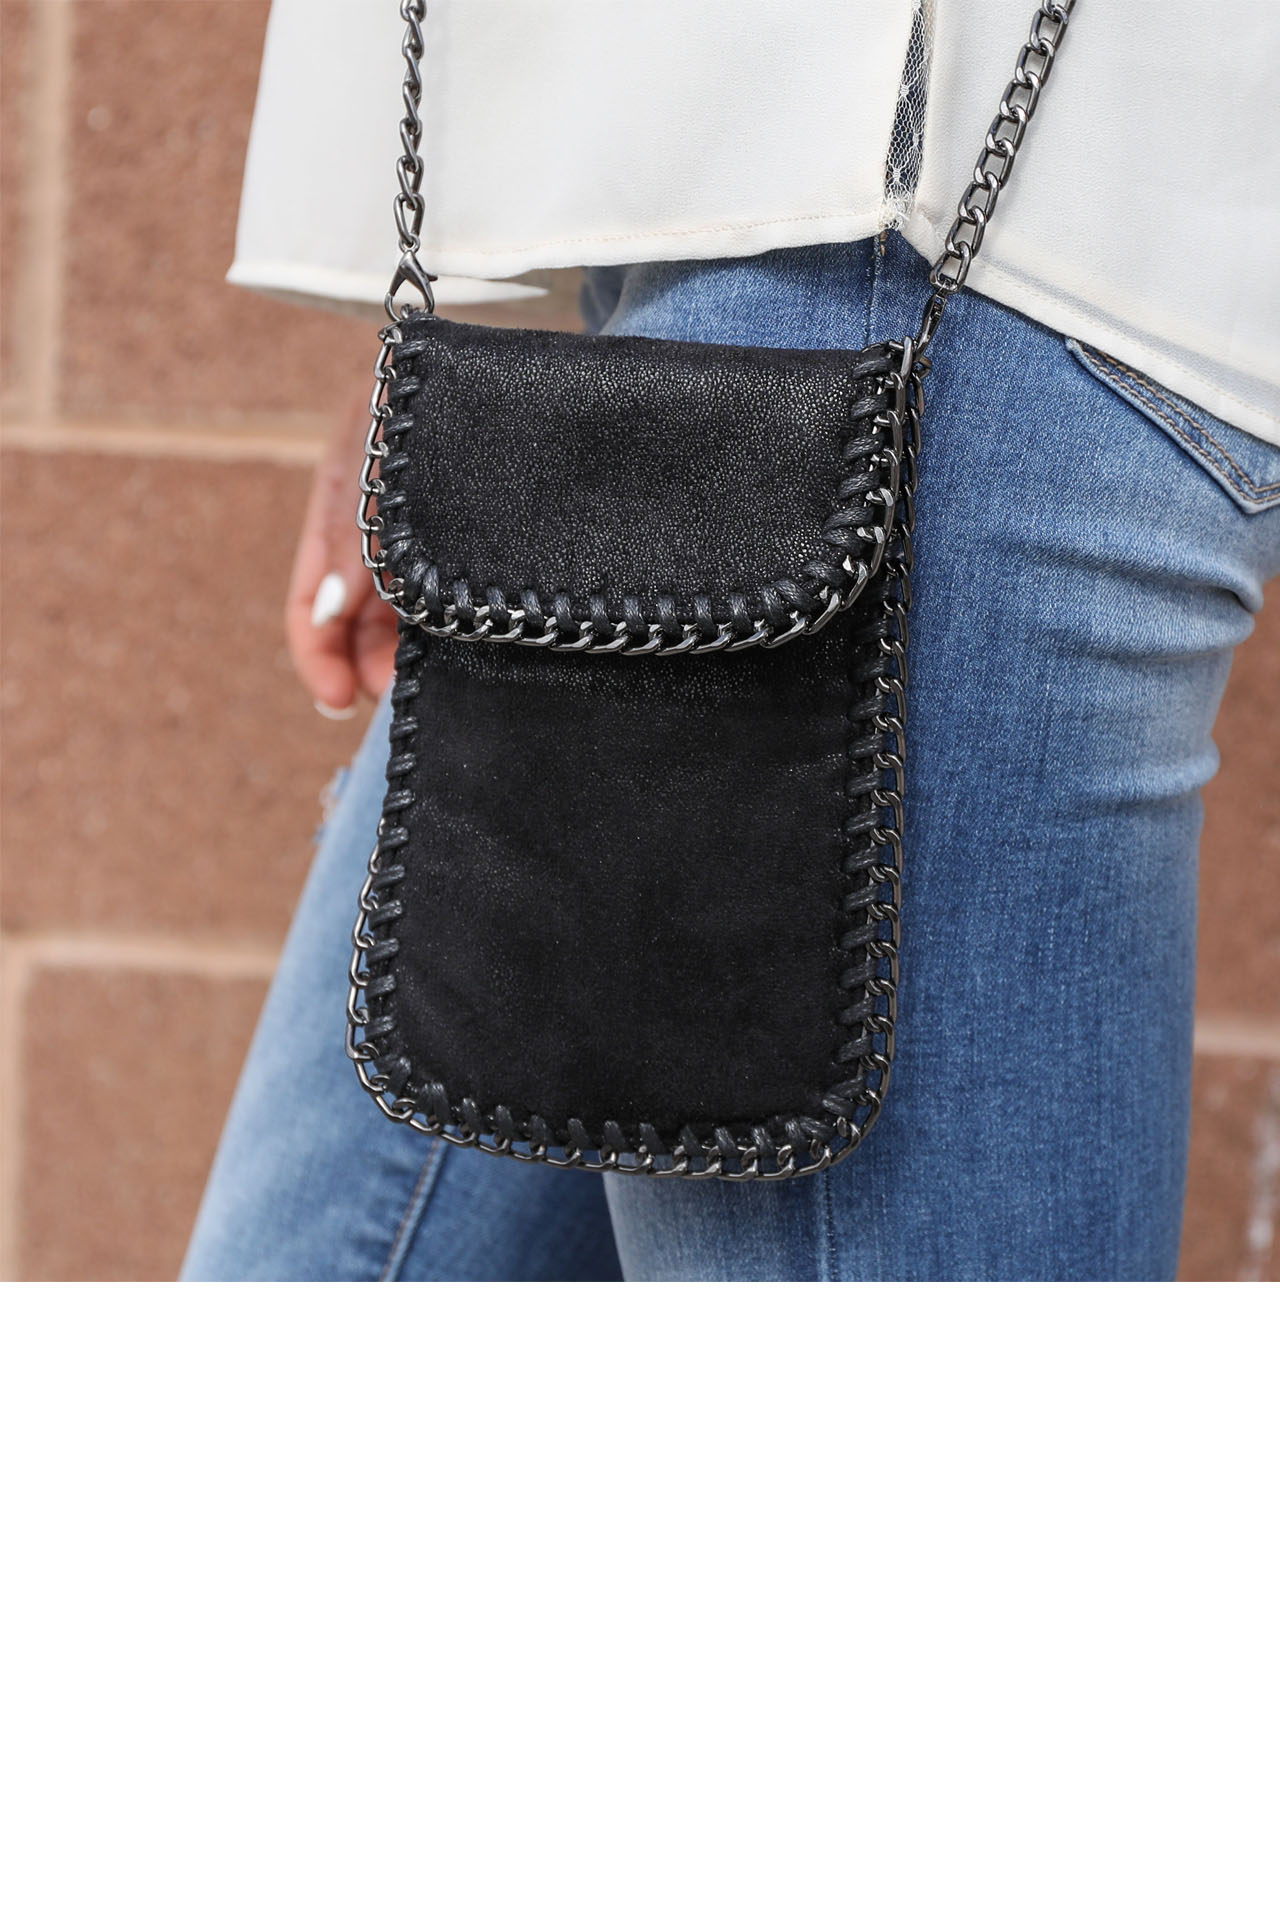 Black Metallic Small Cross Body Bag with Silver Chain Detail